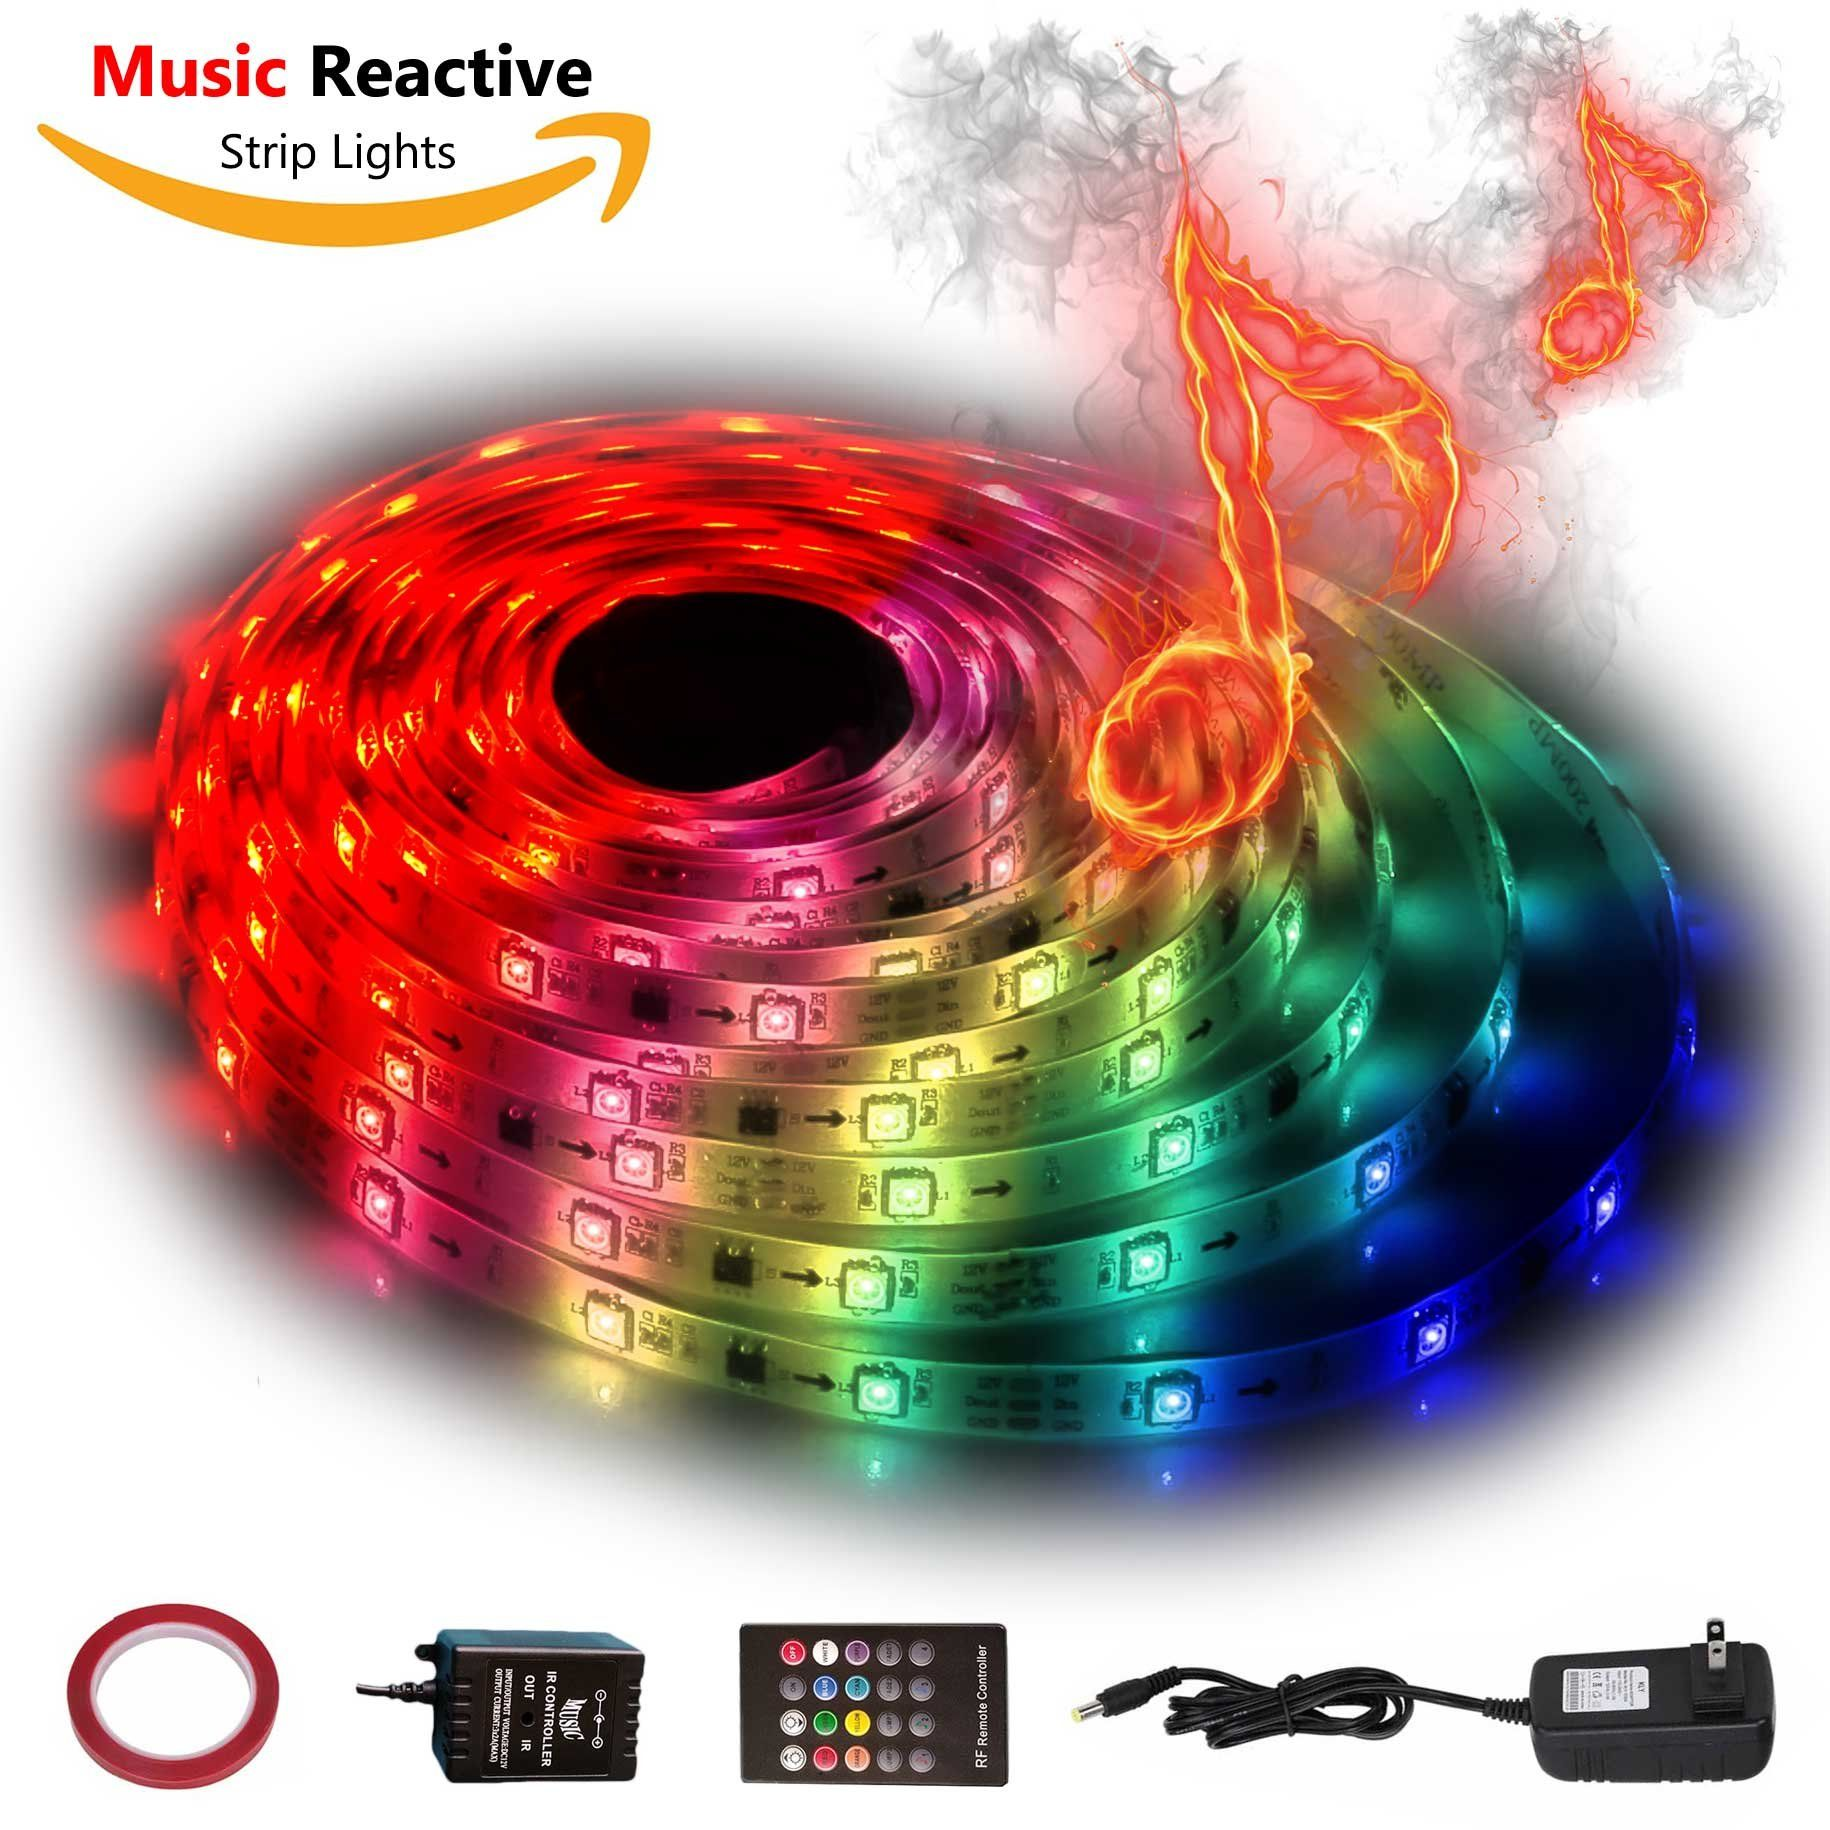 12V LED Strip Lights Sync To Beats of Music,Geekeep Music Reactive ...